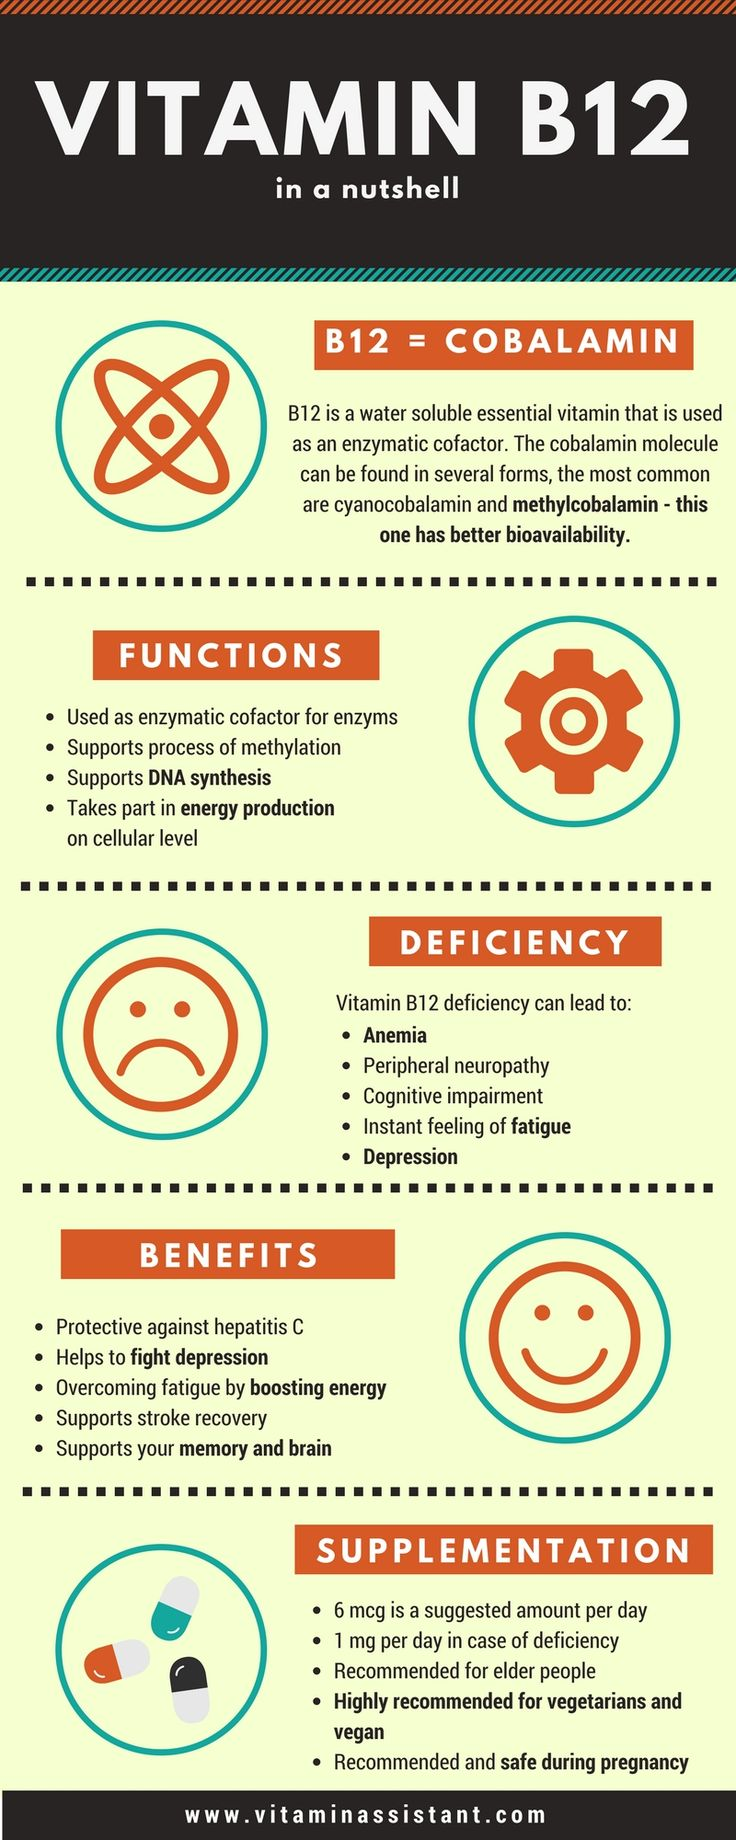 In terms of vitamins for memory and brain, vit. B12 is on top. B12 is an essential vitamin supporting mental health and #energy production in your organism. As it can be found mostly in the meat, eggs and algae plants. The supplementation of B12 is mandatory for #vegan and recommended for all people fighting with #depression or fatigue.